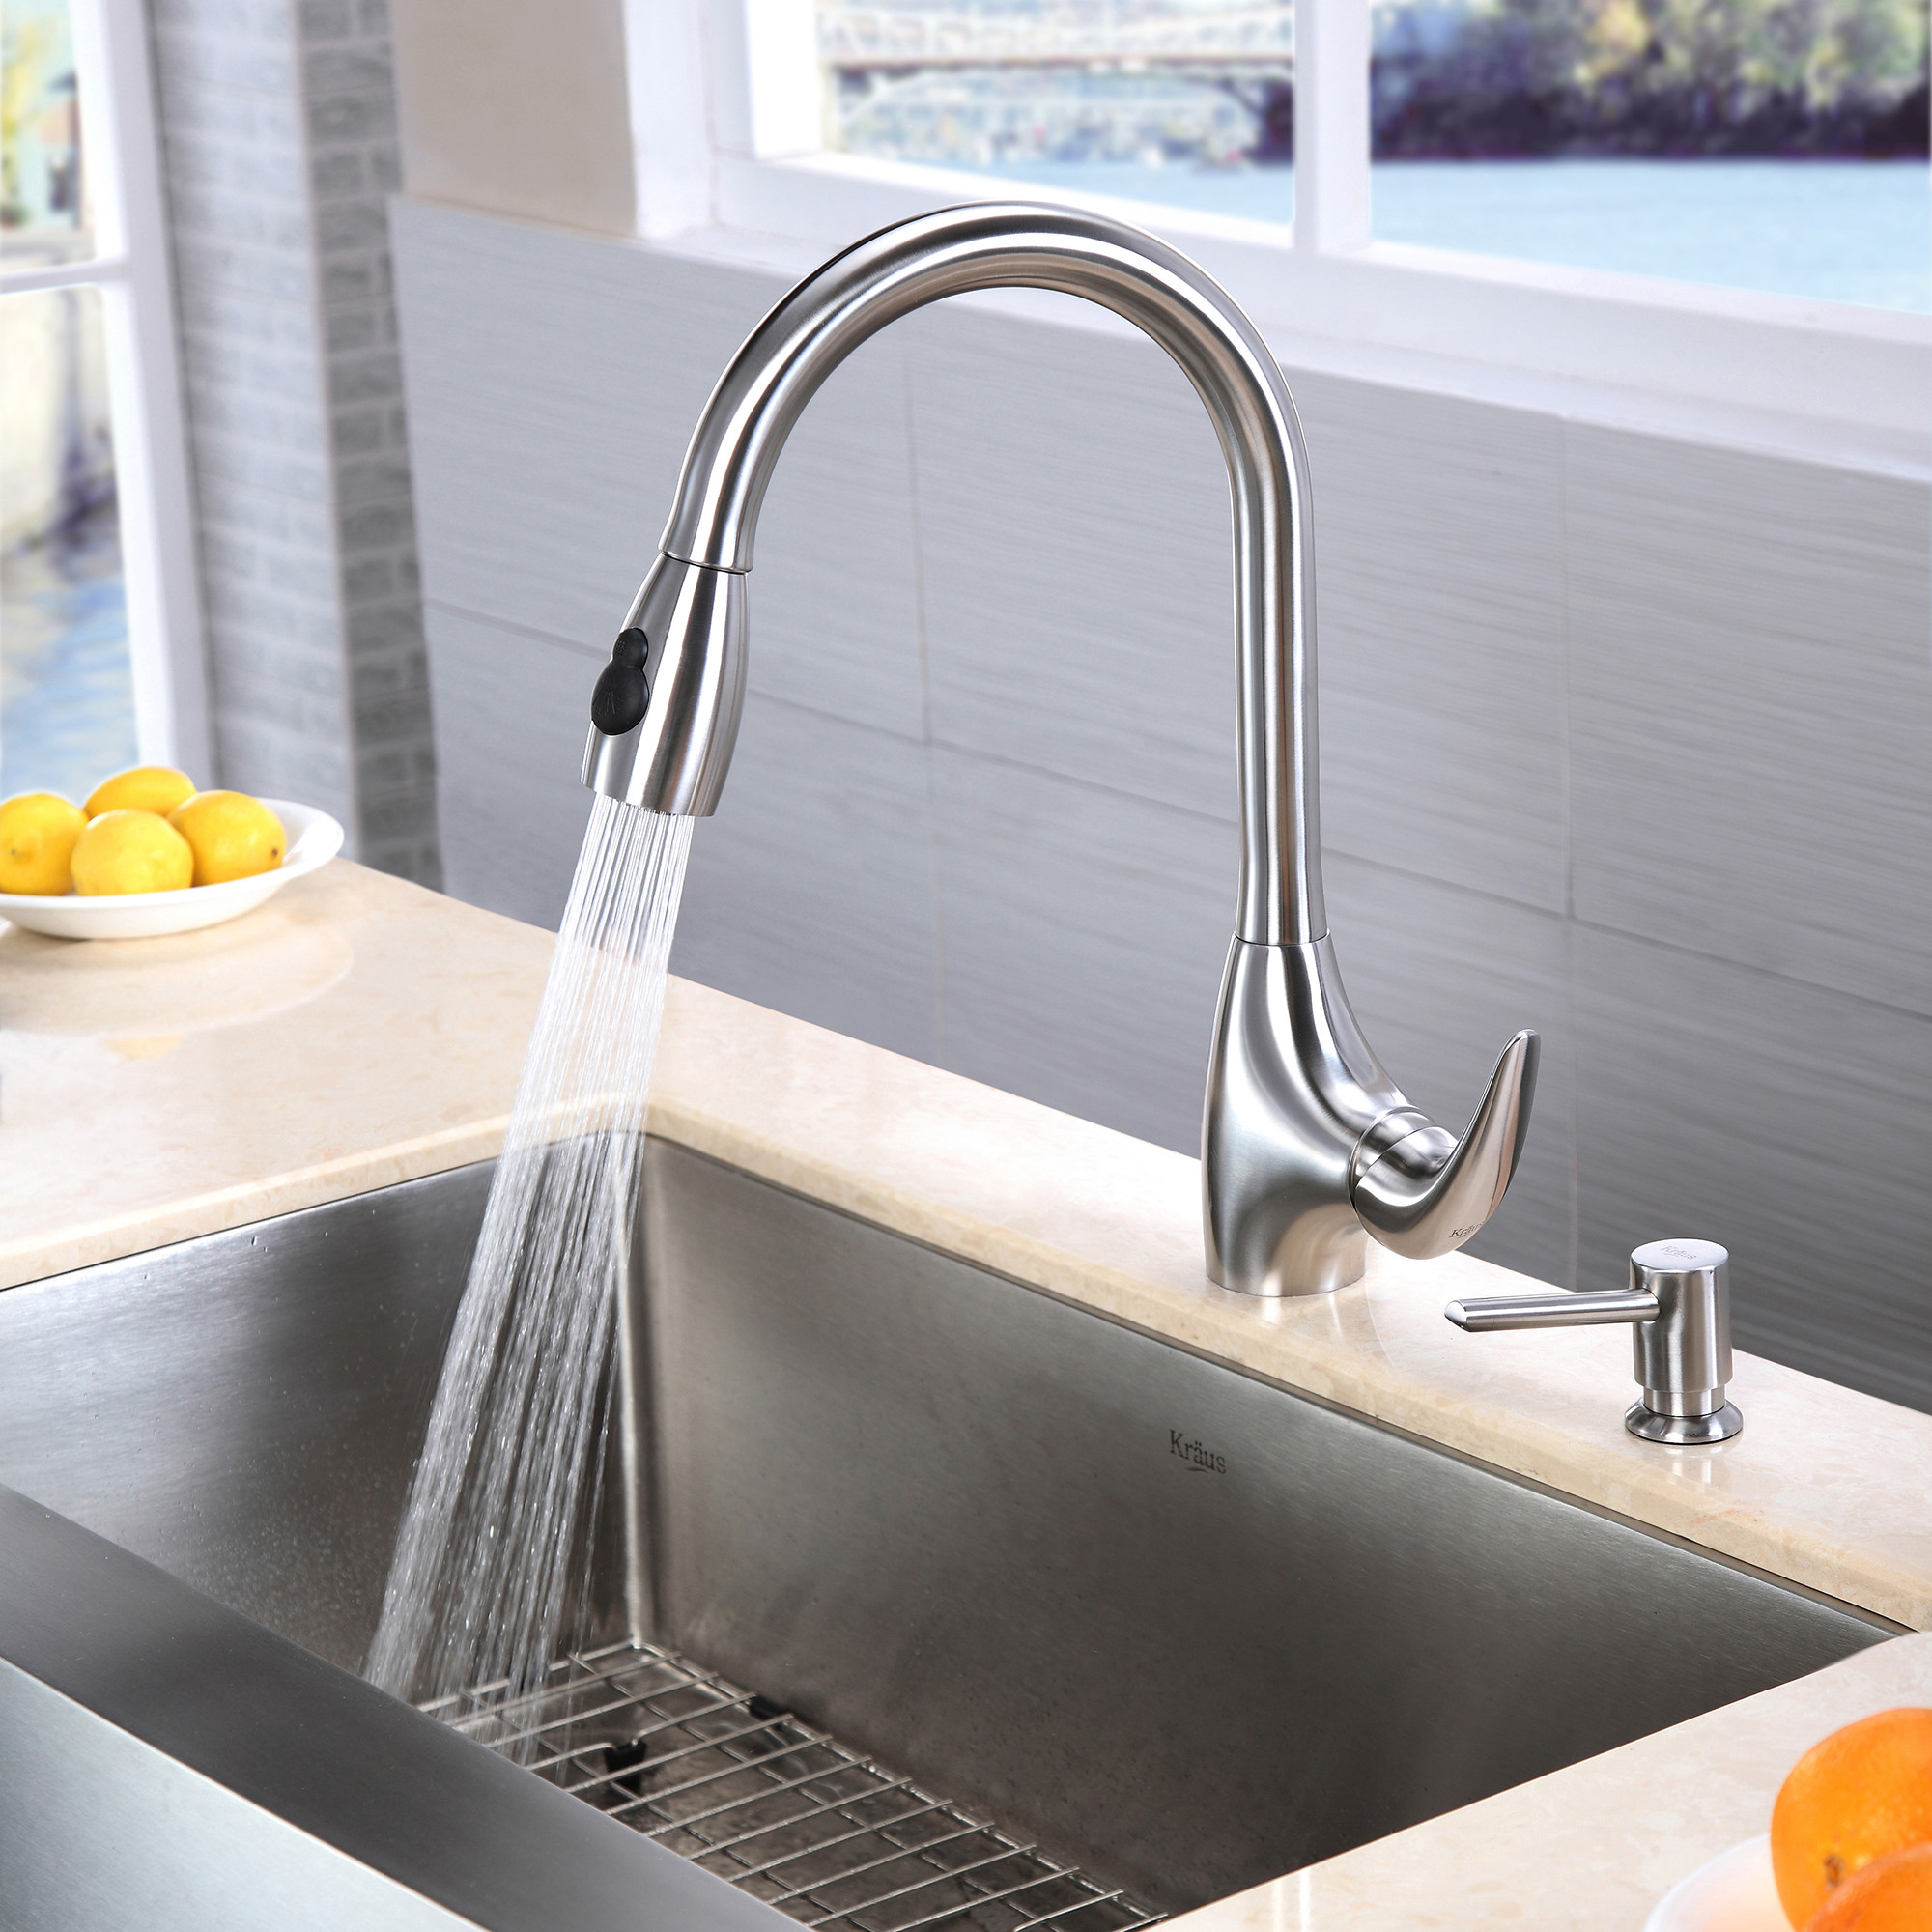 kraus-farmhouse-33-kitchen-sink-khf200-33